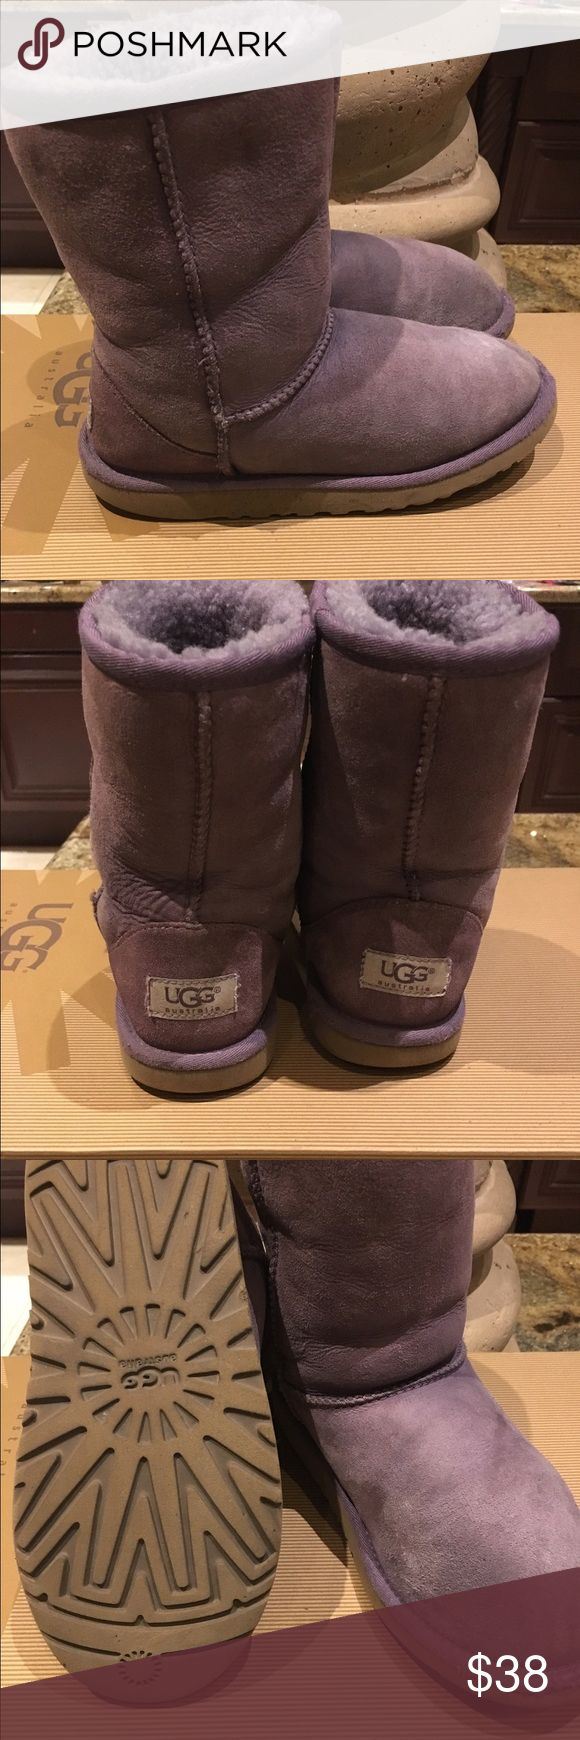 UGG girls boots size 4 UGG boots girls size 4, in good used condition, with normal sings of wear. UGG Shoes Boots